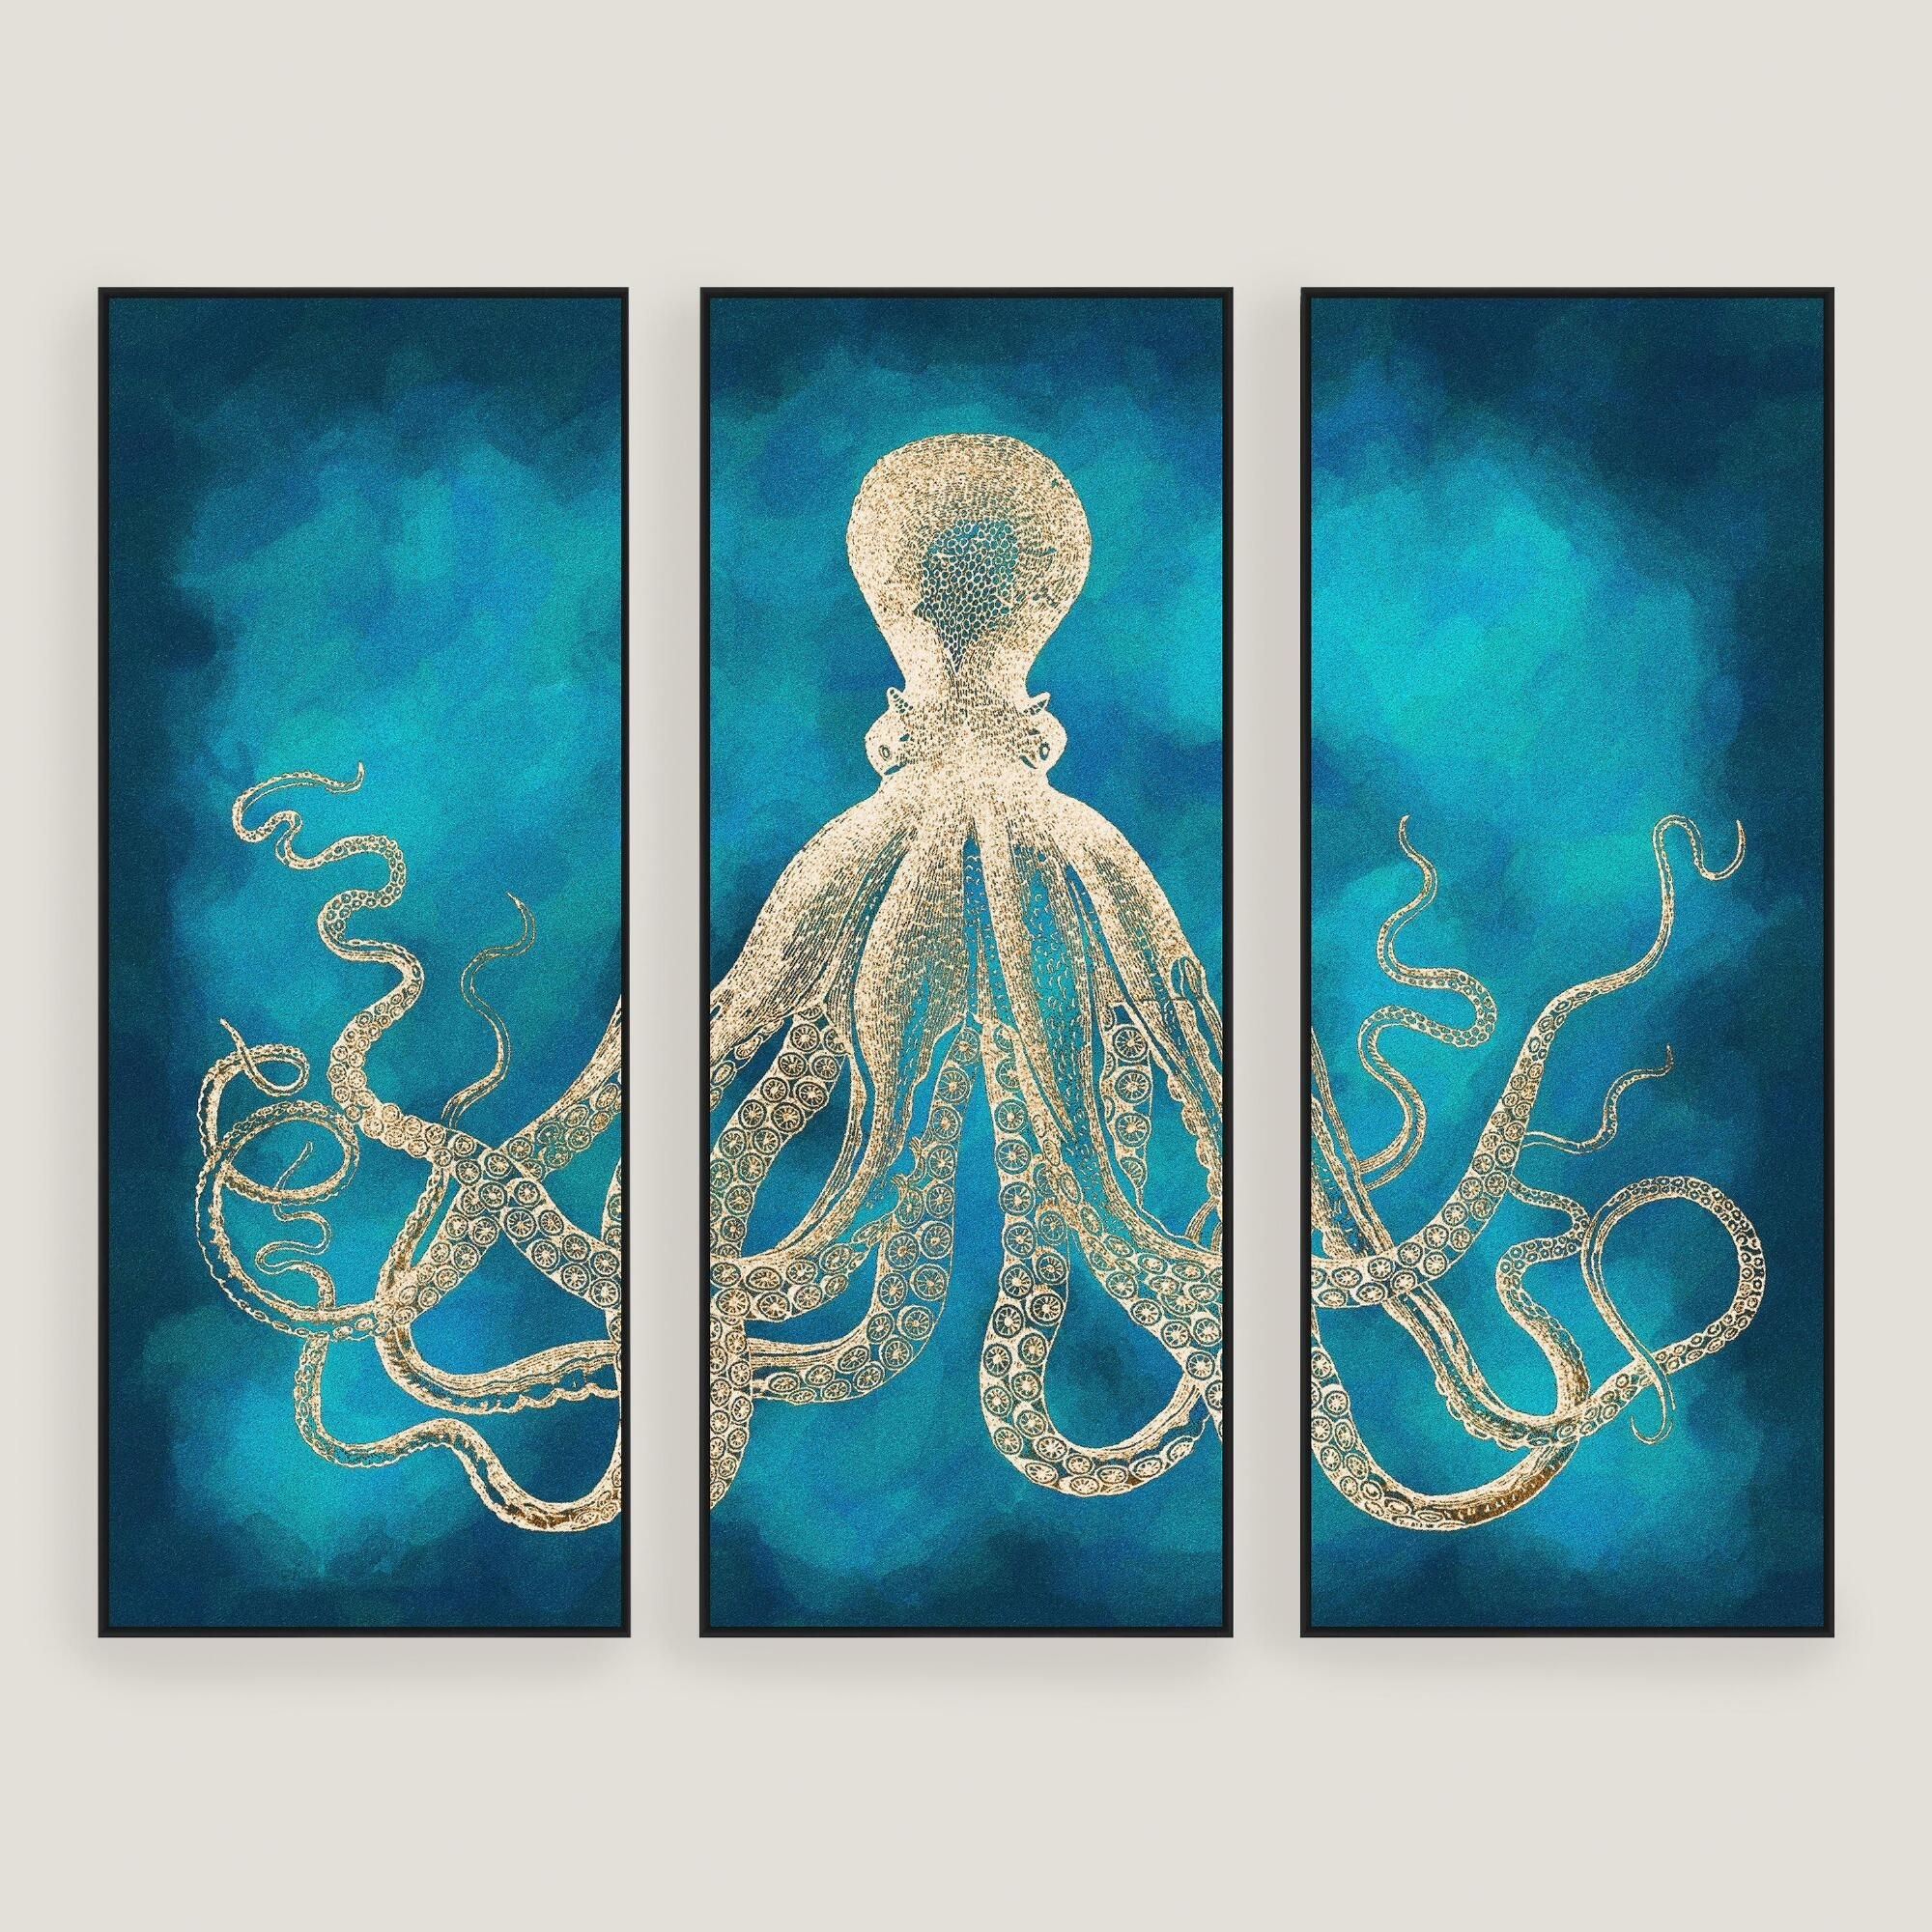 Octopus Sea Life Wall Art 3 Piece: Blueworld Market | Products Inside Most Current Octopus Wall Art (View 11 of 20)